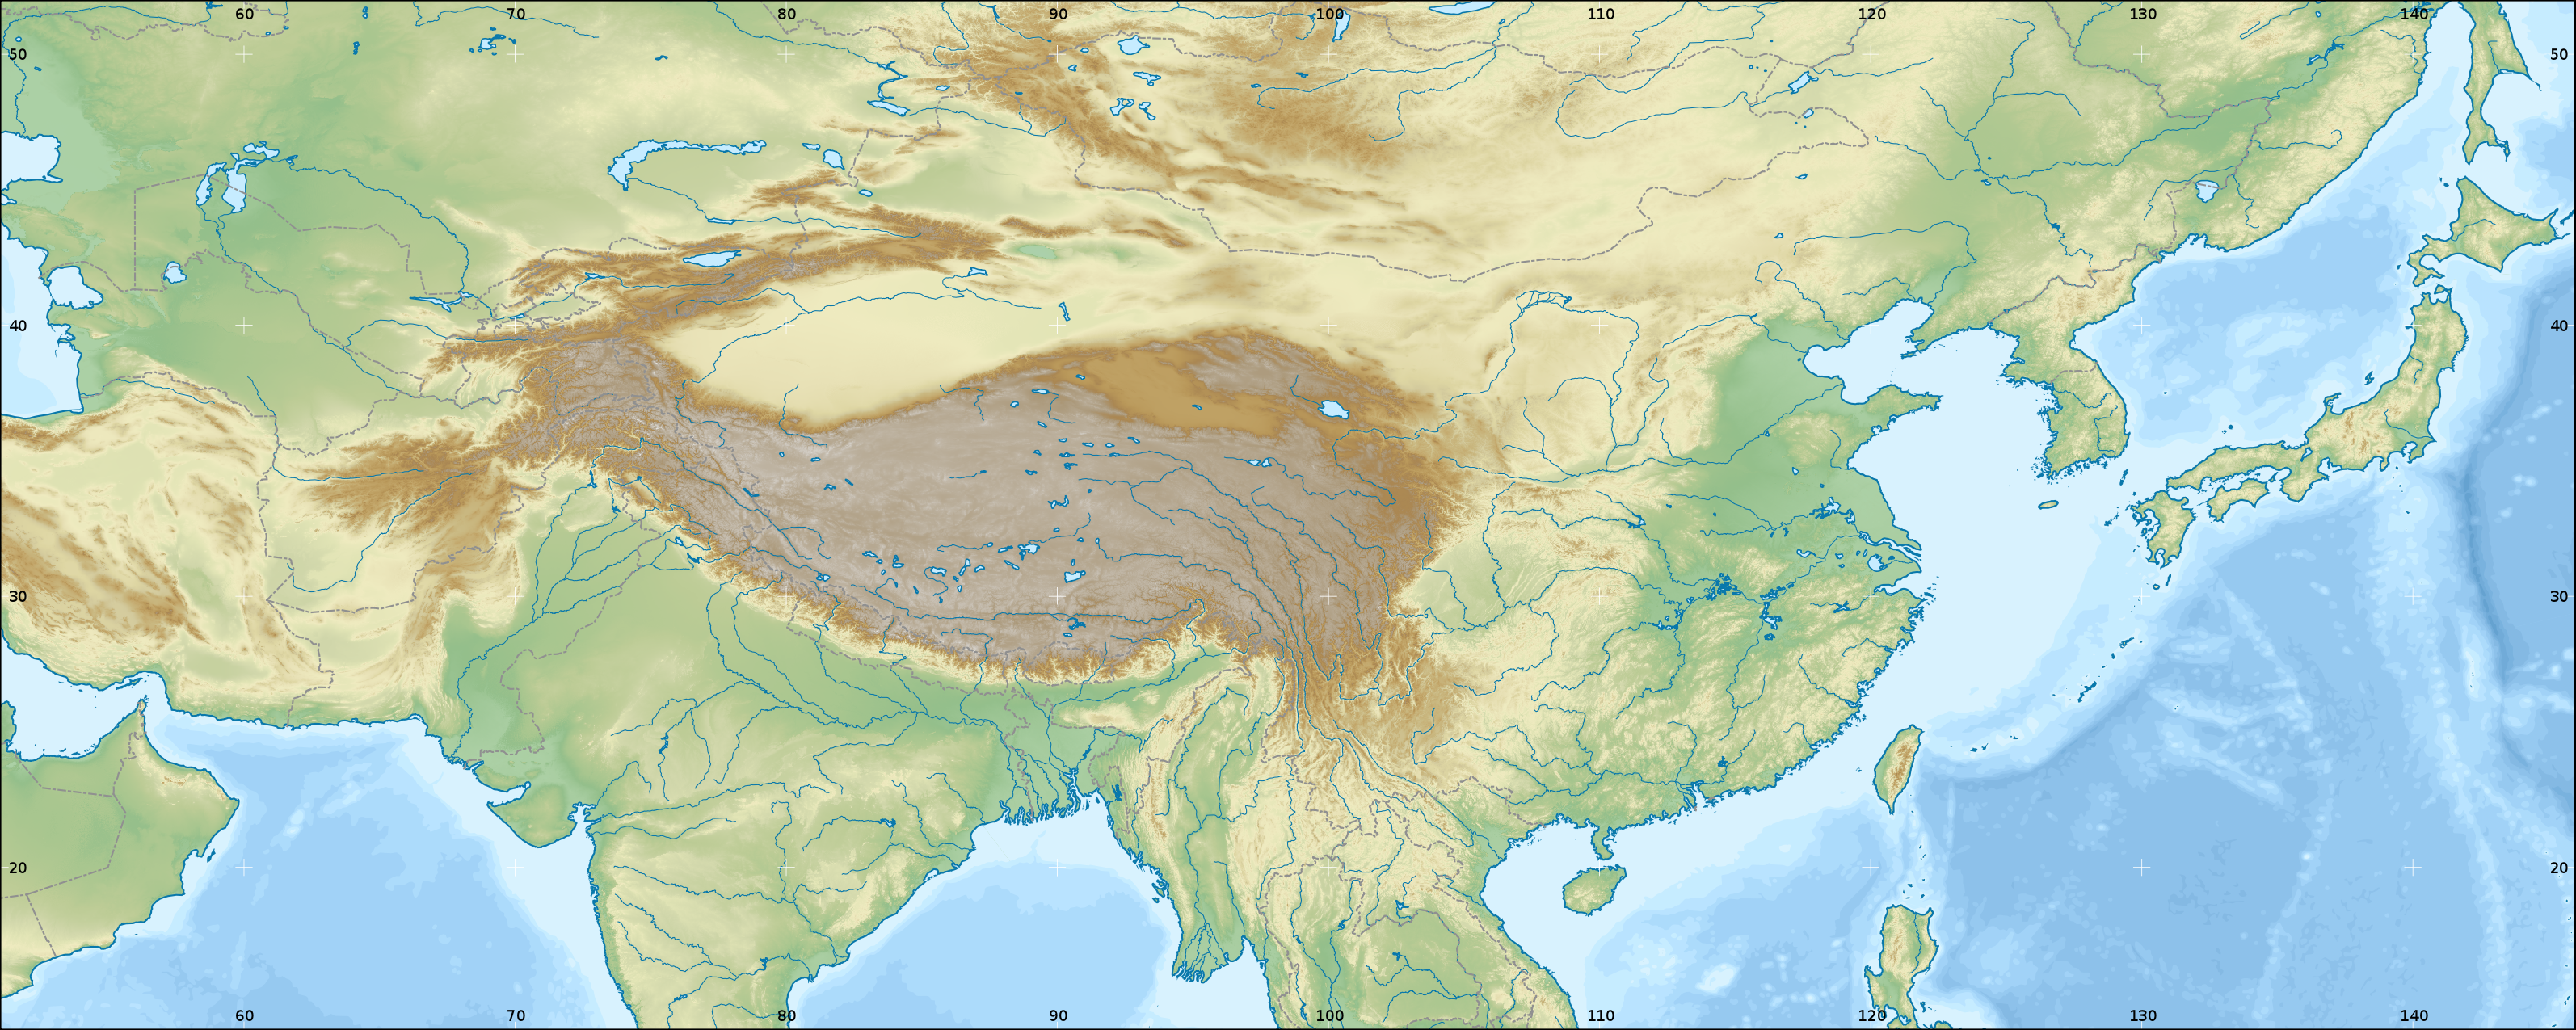 Wikipediagraphics labmap workshopchinagithub wikipedia mediachinese history large 51e146w 14n52n color topography bordersg gumiabroncs Gallery